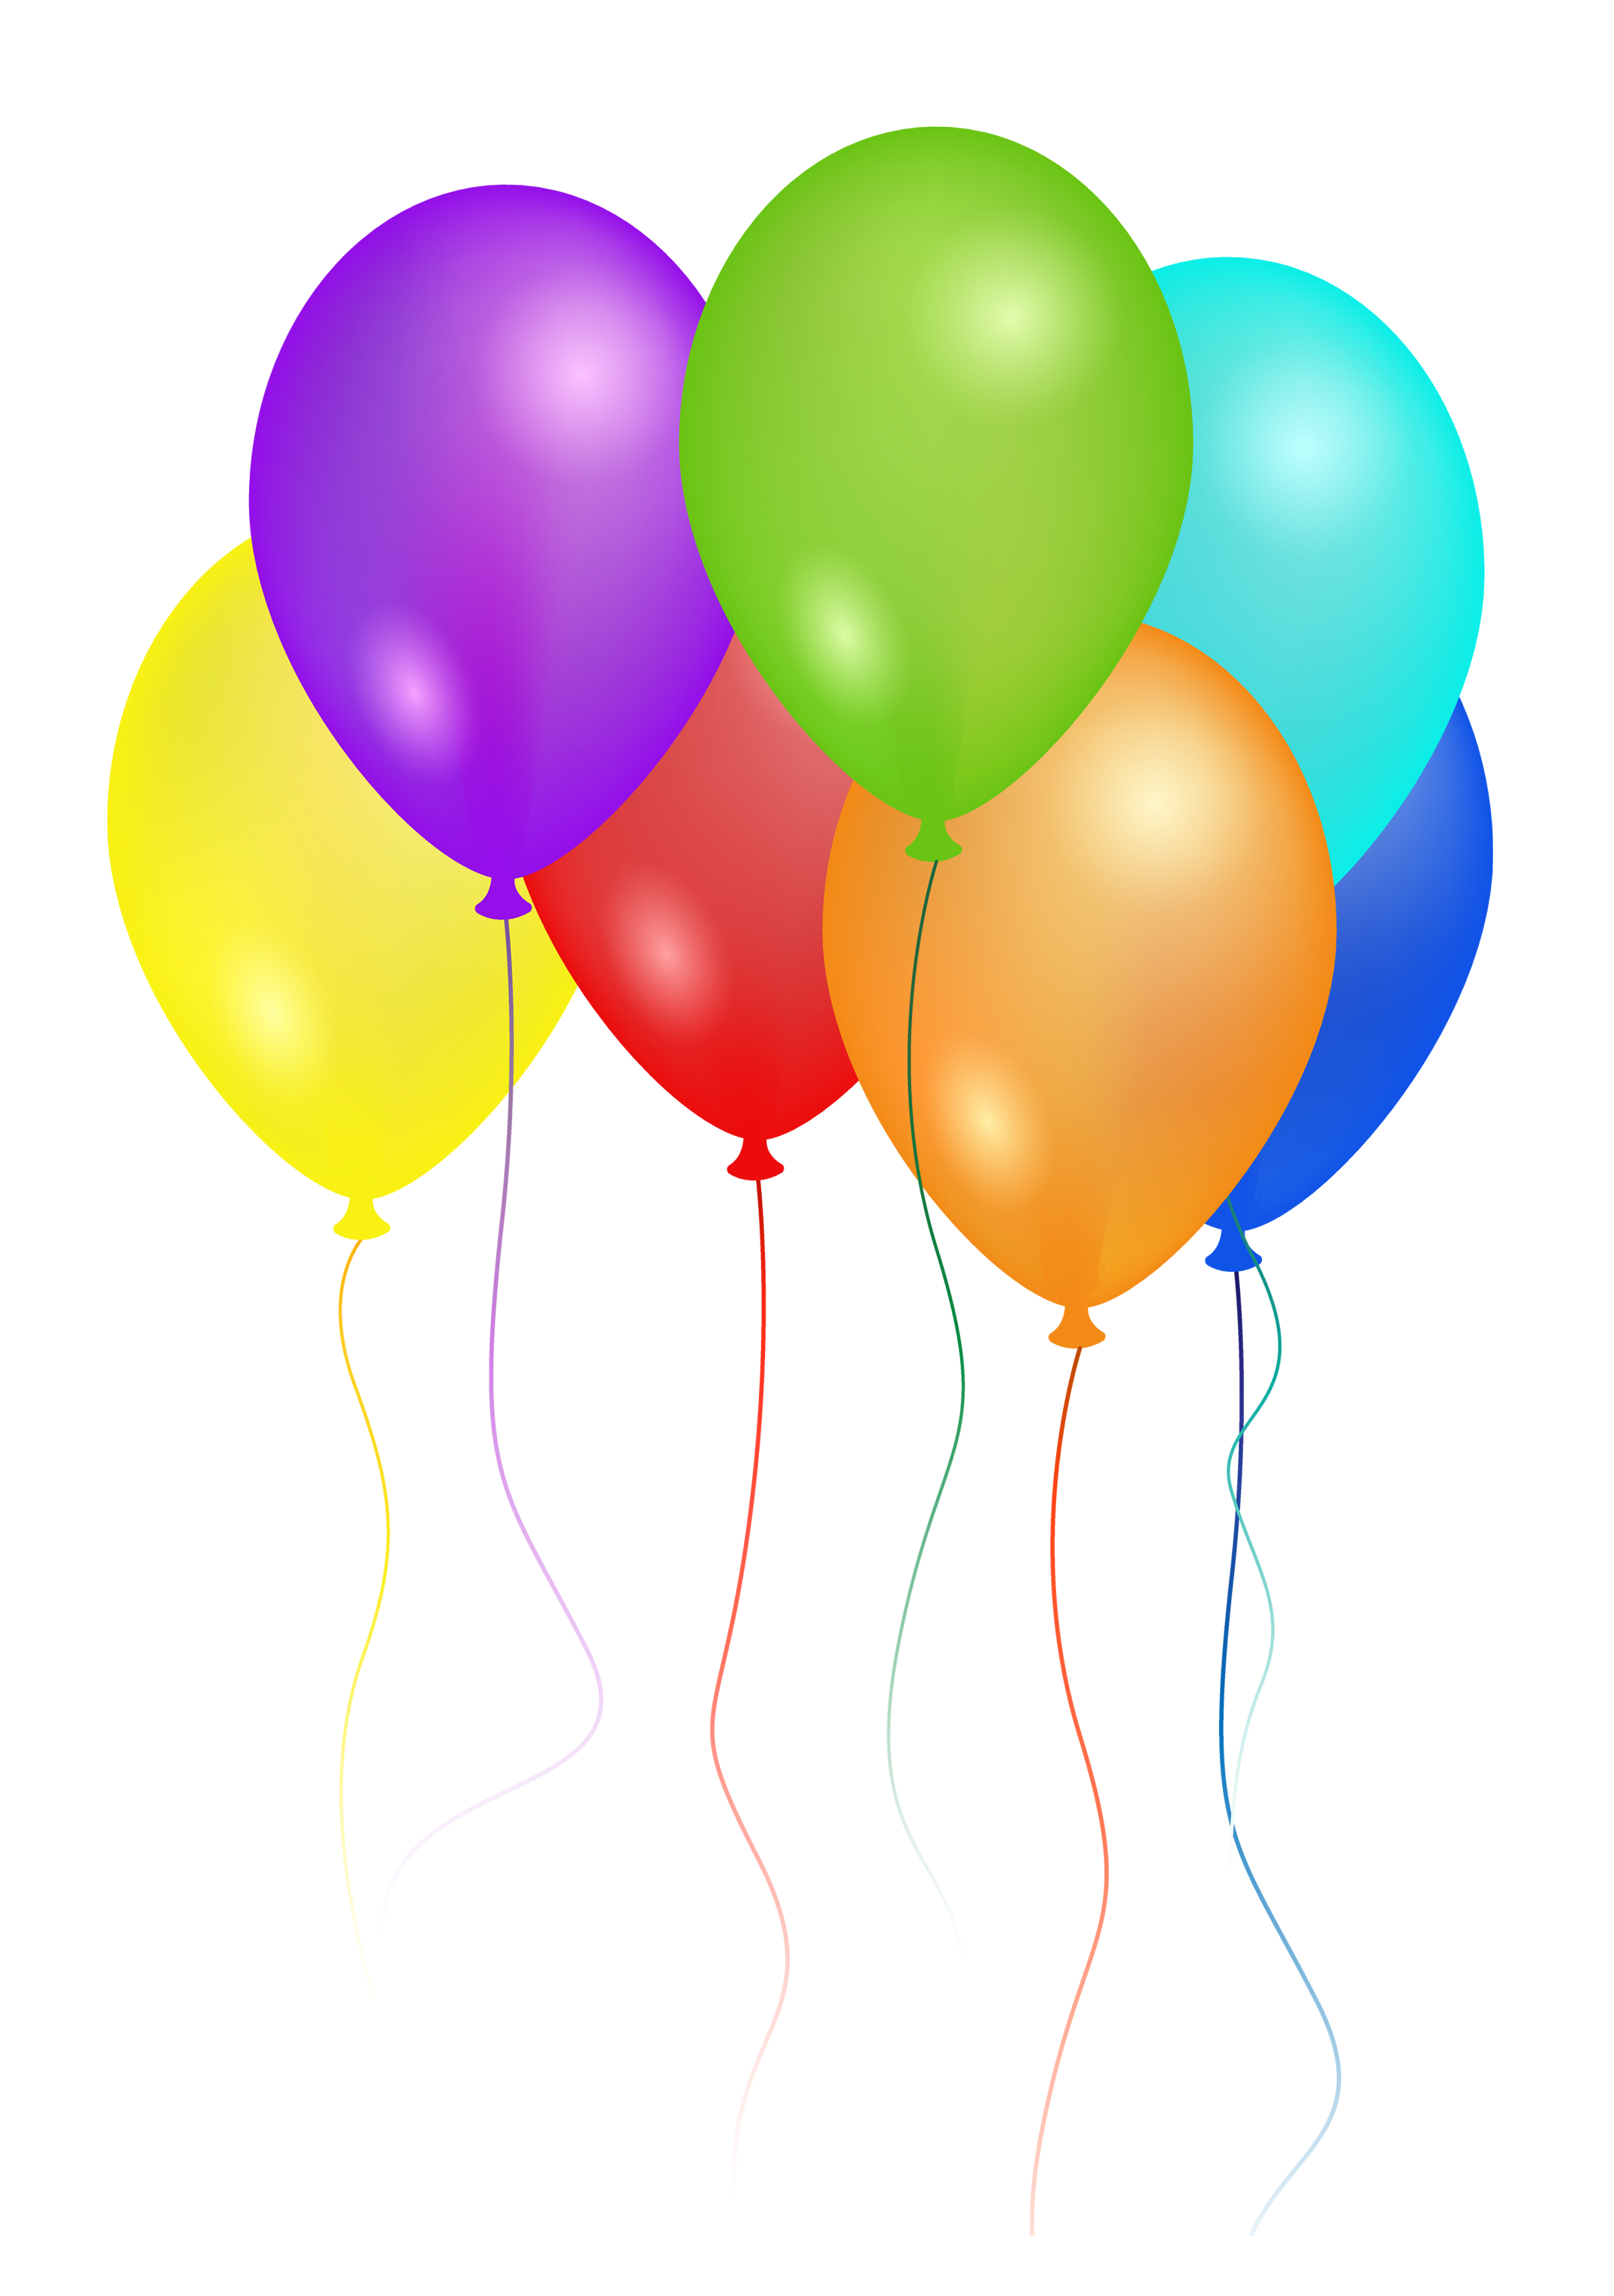 birthday party balloons png image pngpix #9346